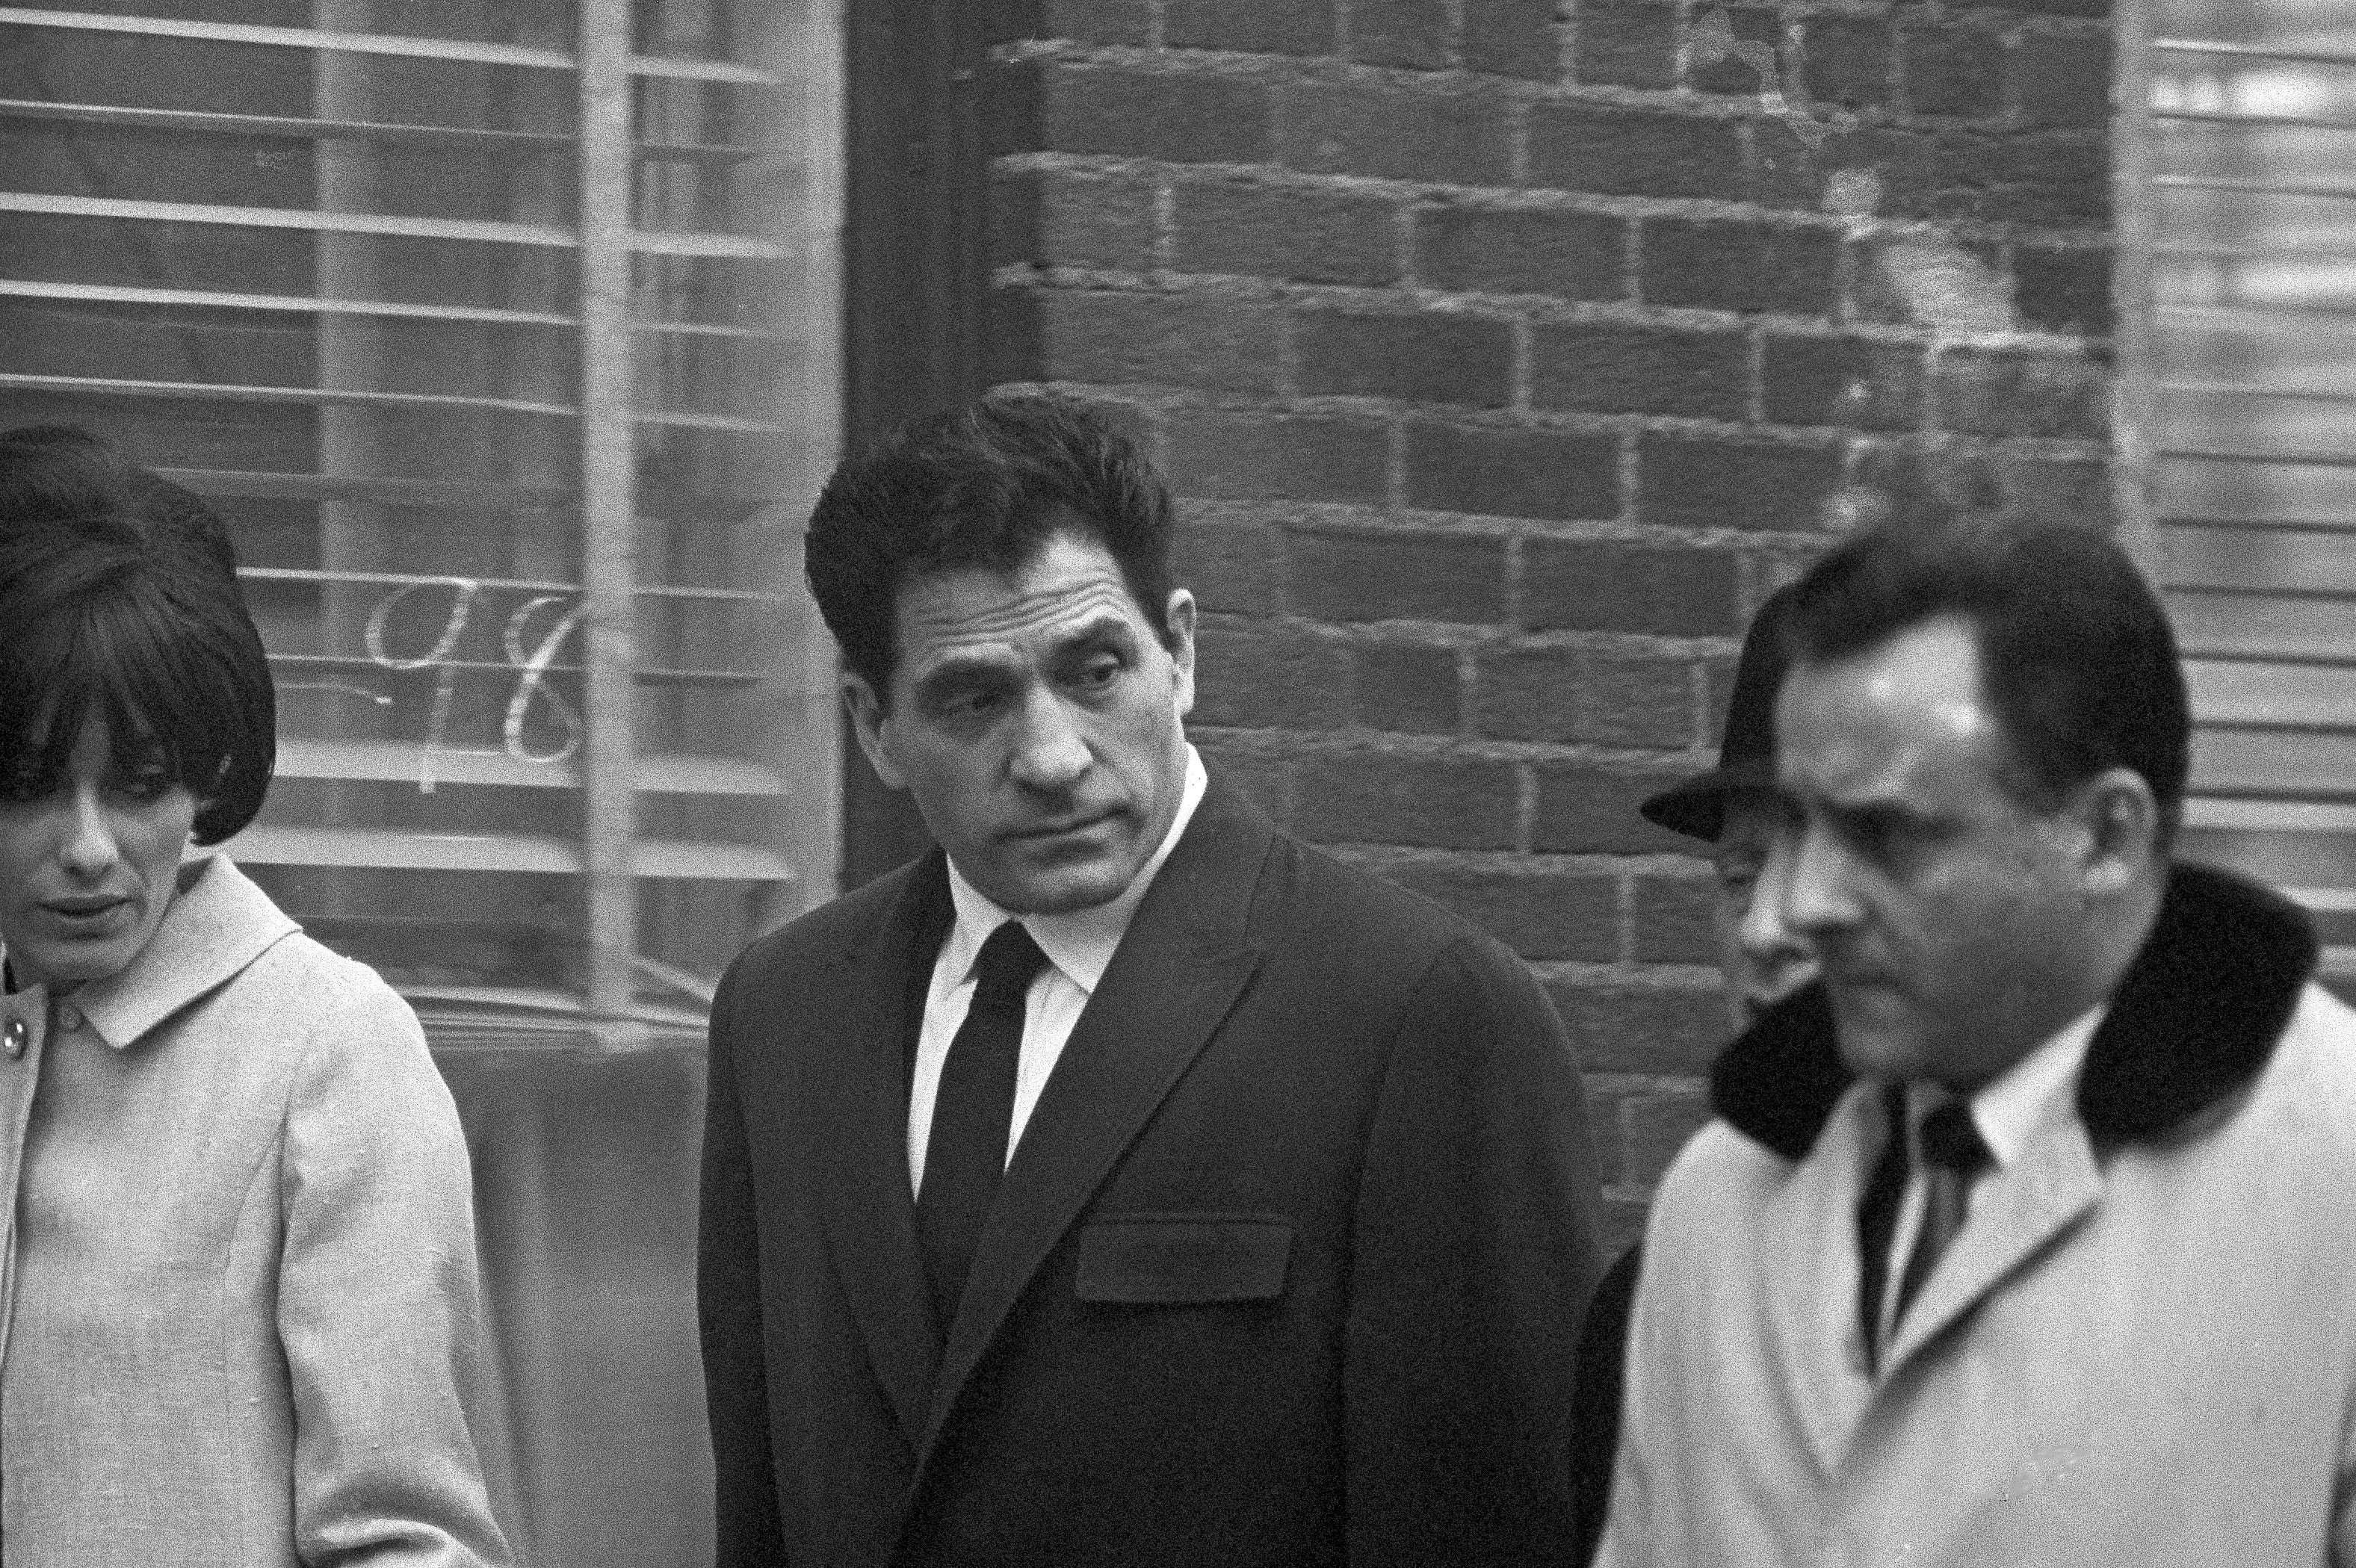 Sonny Franzese, once a feared member of the Colombo crime family, earned a 50-year prison sentence in the late 1960s for organizing a slew of bank robberies.